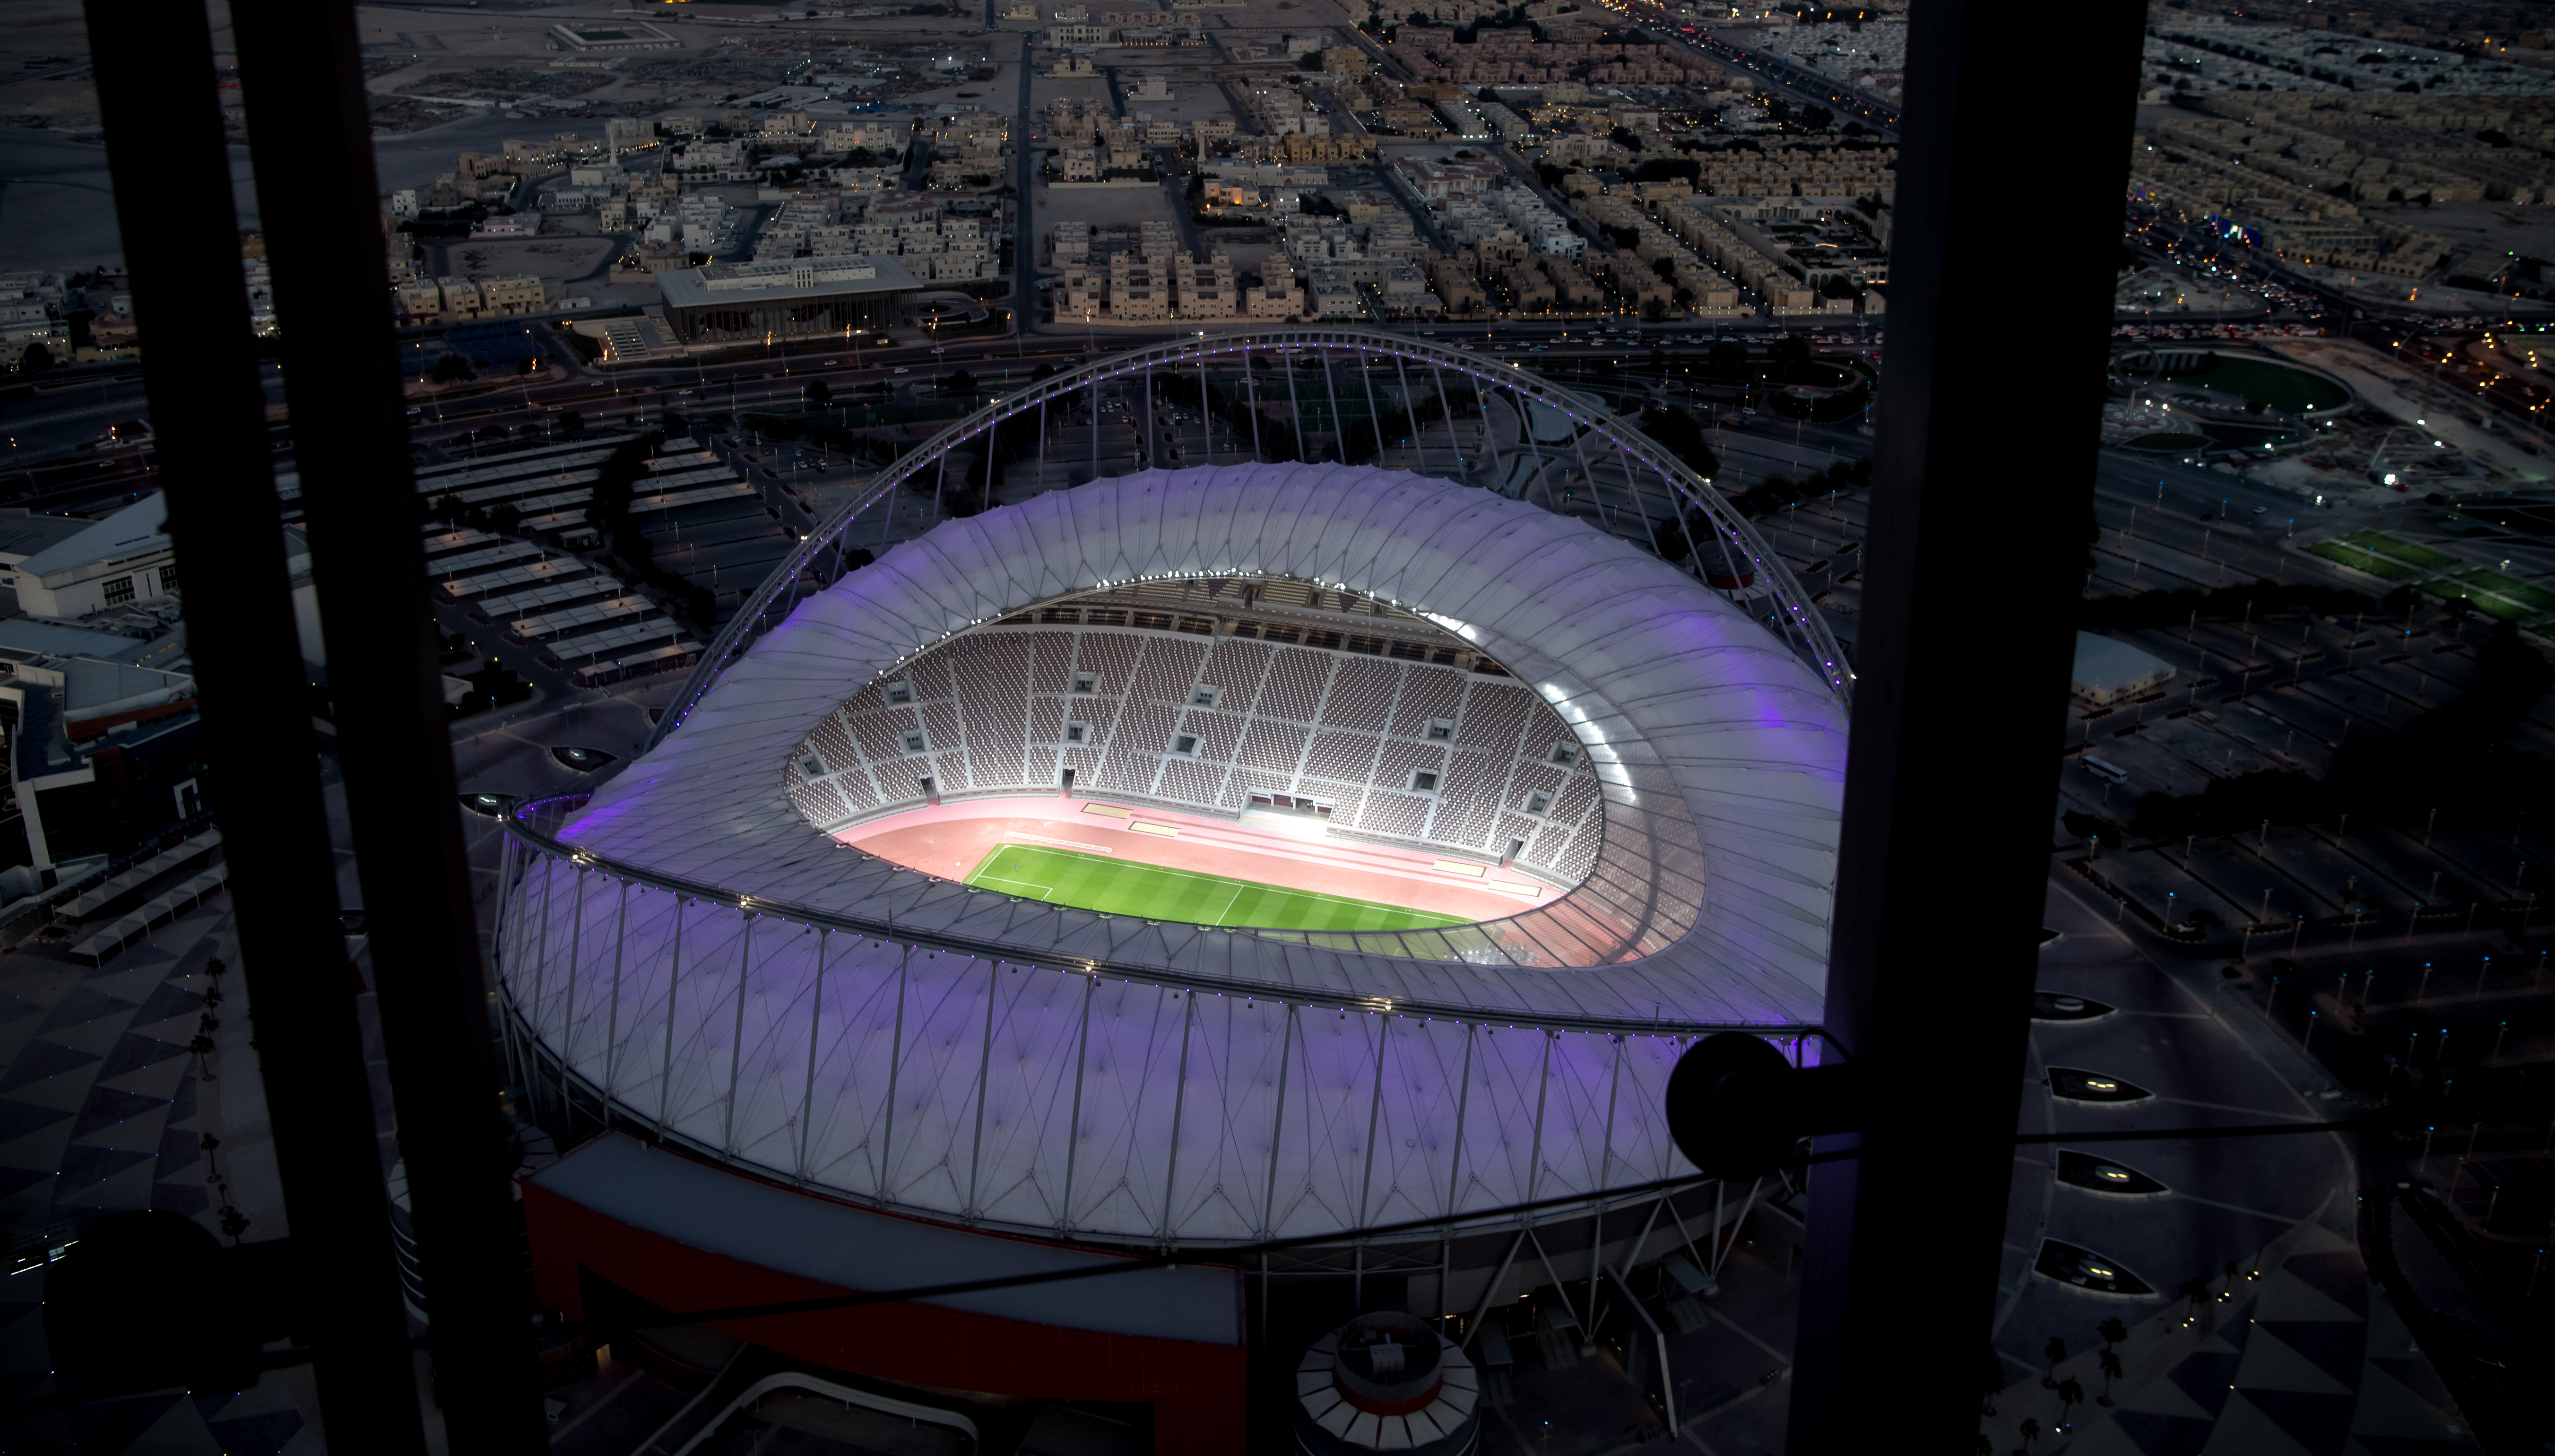 The Khalifa International Stadium in Doha will host the final in December 2022. Image: PA Images